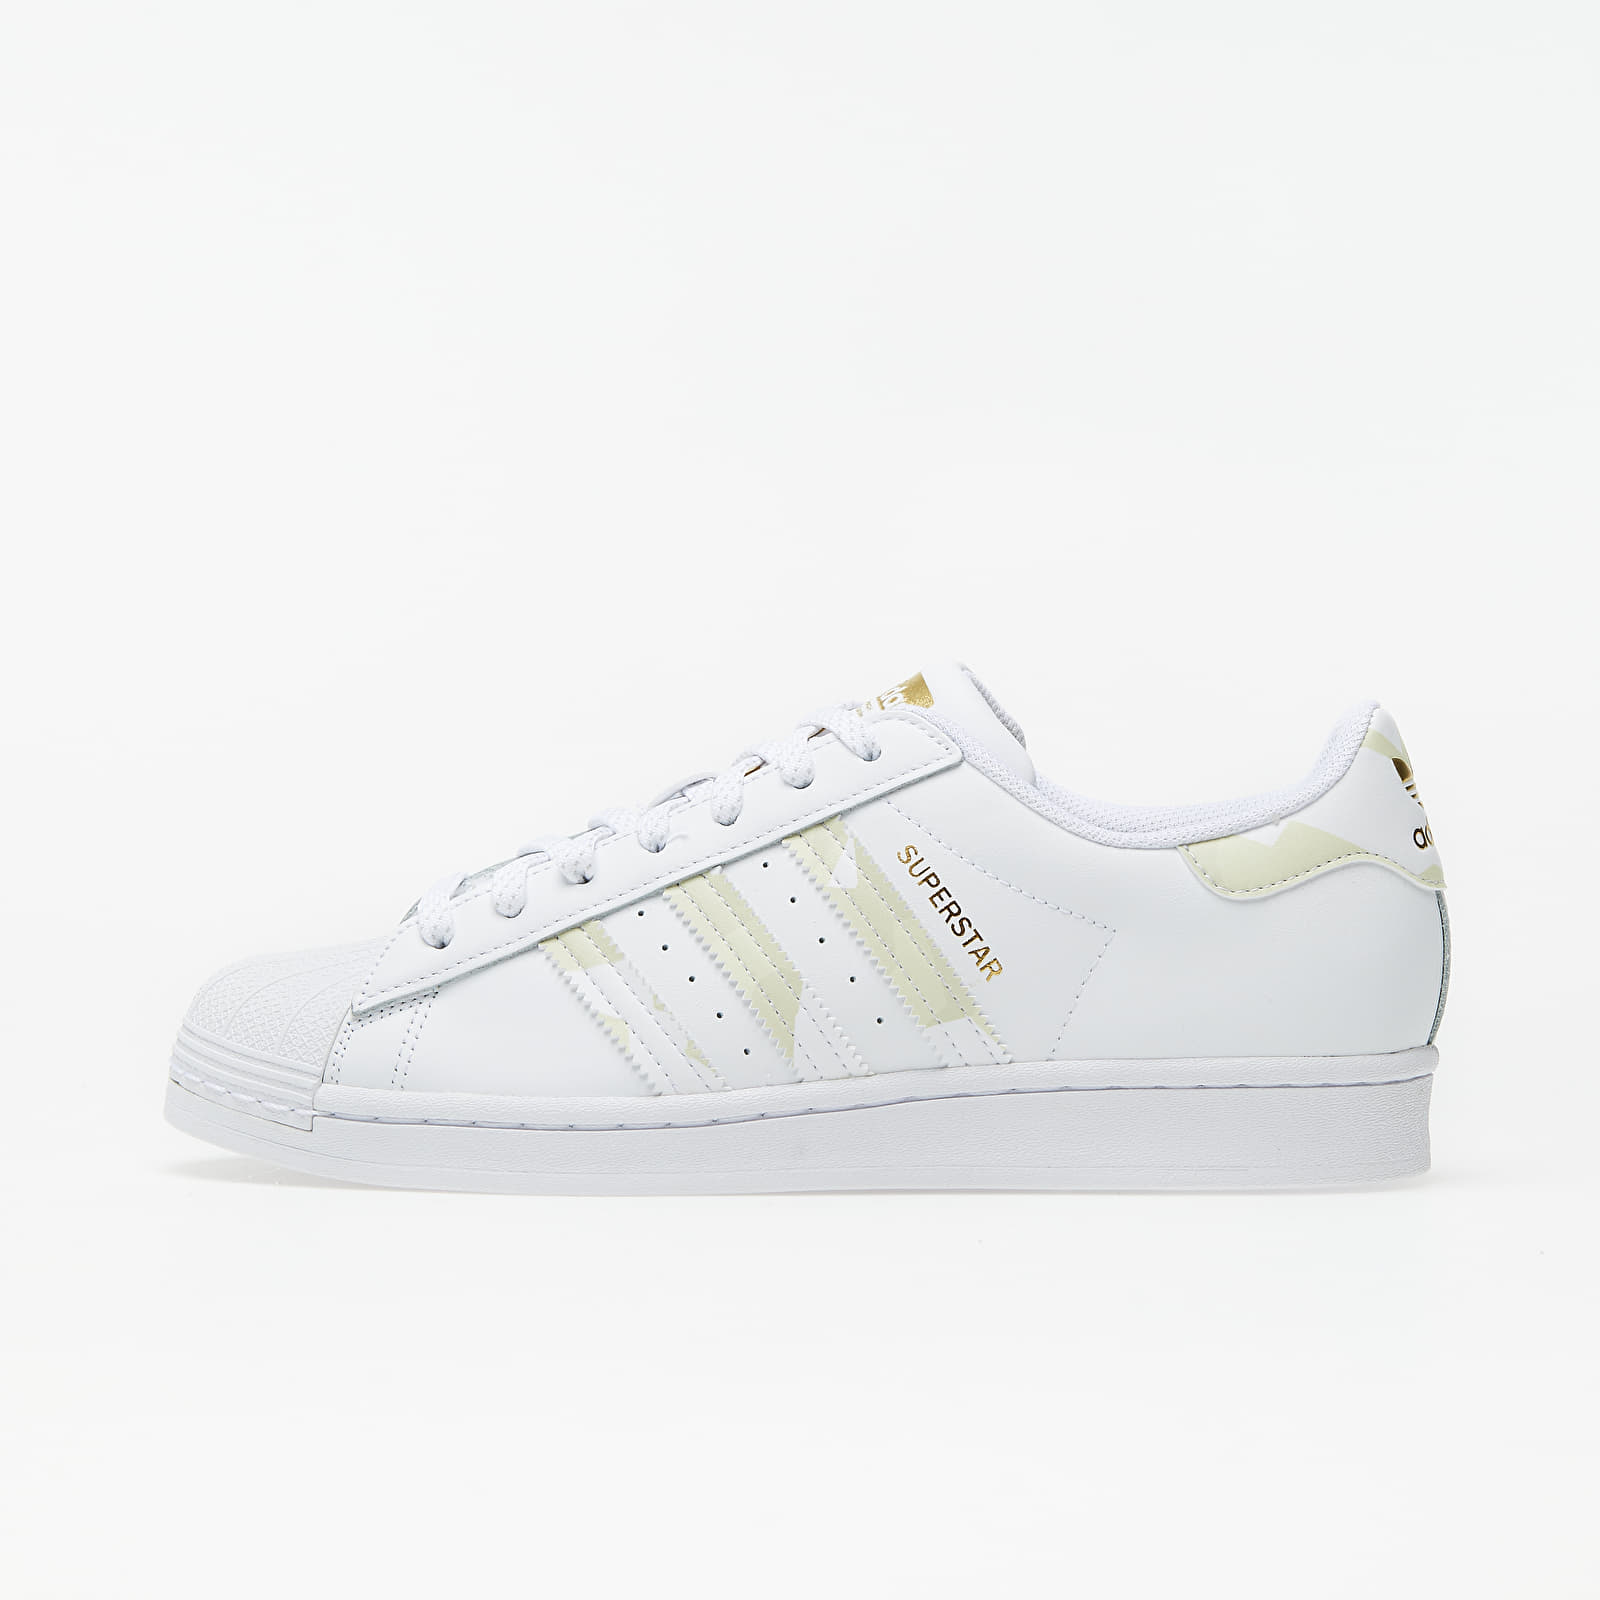 Men's shoes adidas Superstar Ftw White/ Core Black/ Gold Metalic